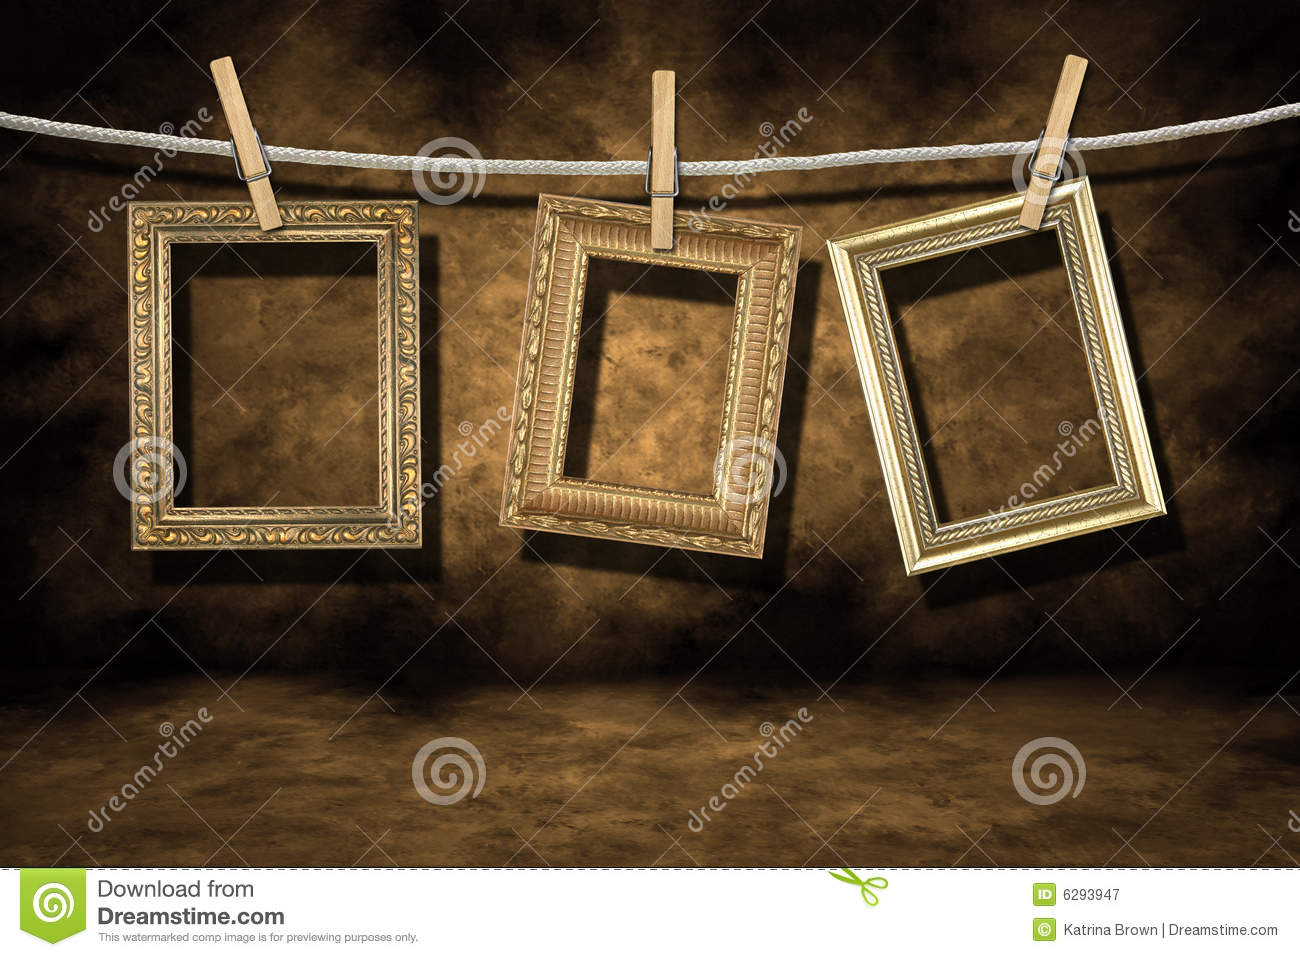 Gold Photo Frames On A Distressed Grunge Backgroun Royalty